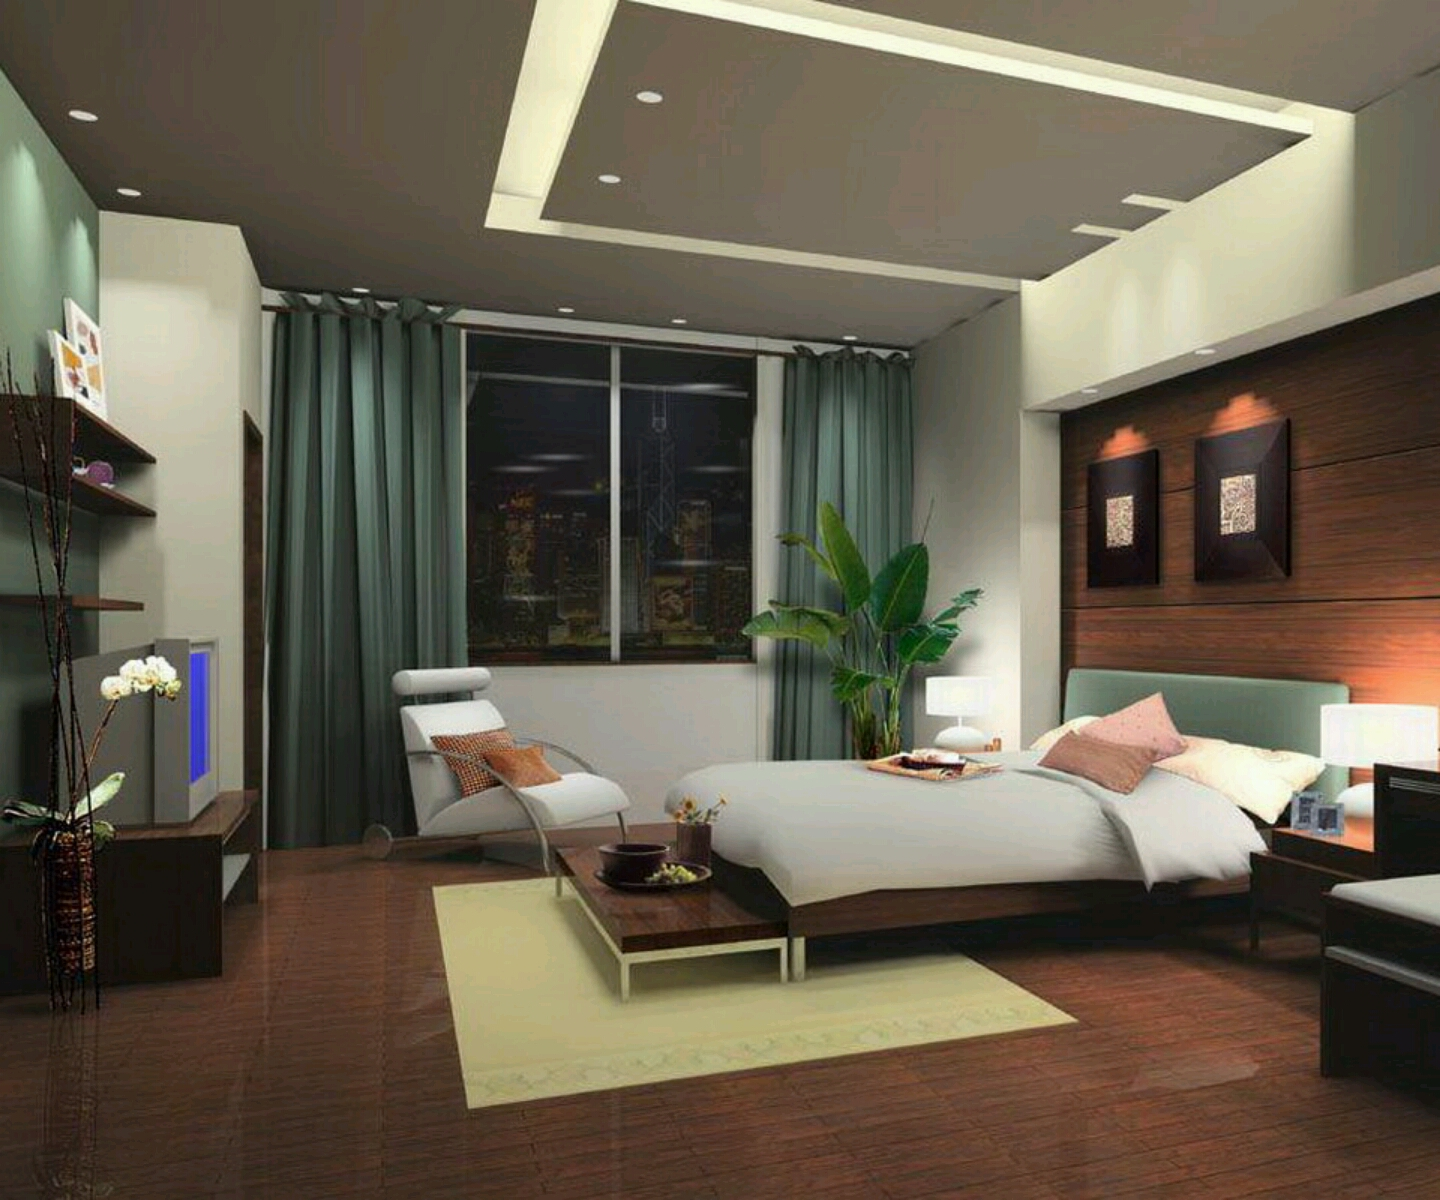 New home designs latest modern bedrooms designs best ideas for Modern bedroom